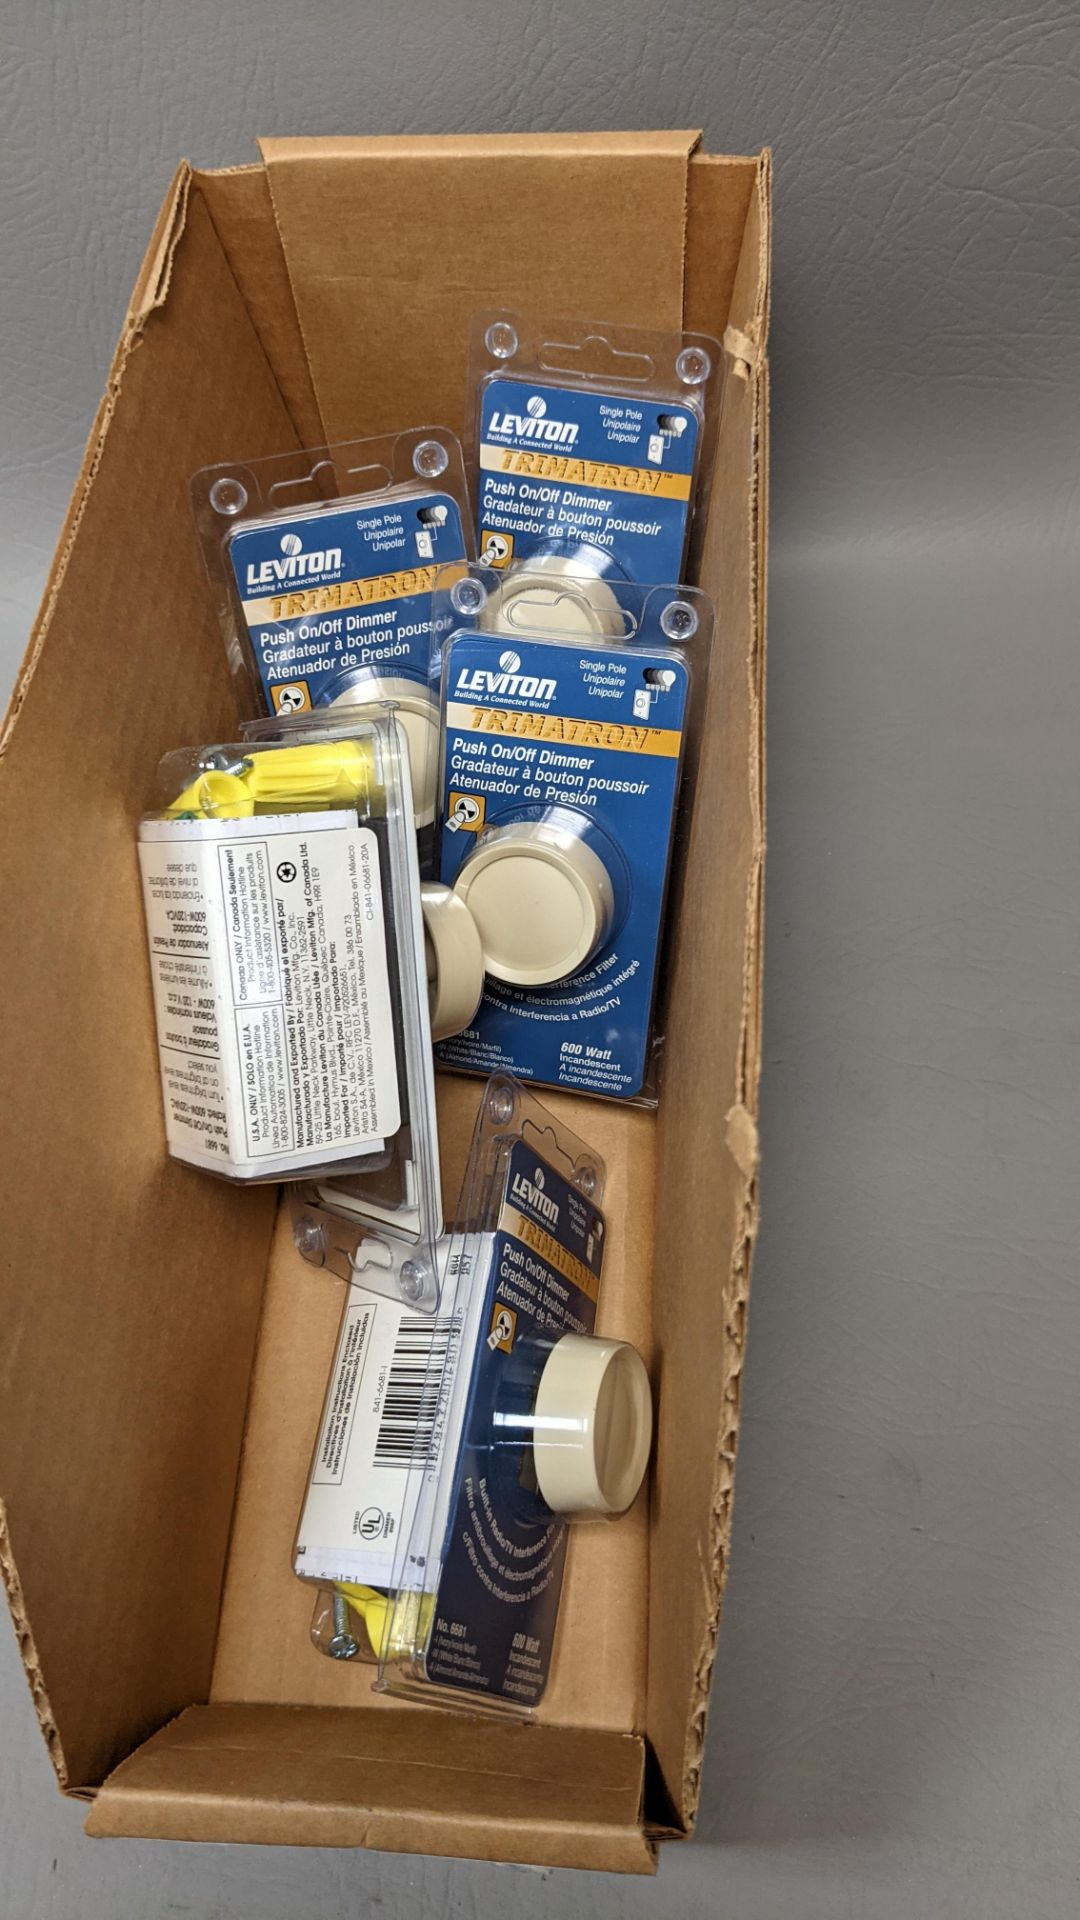 LOT OF NEW LEVITON PUSH ON/OFF LIGHT DIMMERS - Image 5 of 5